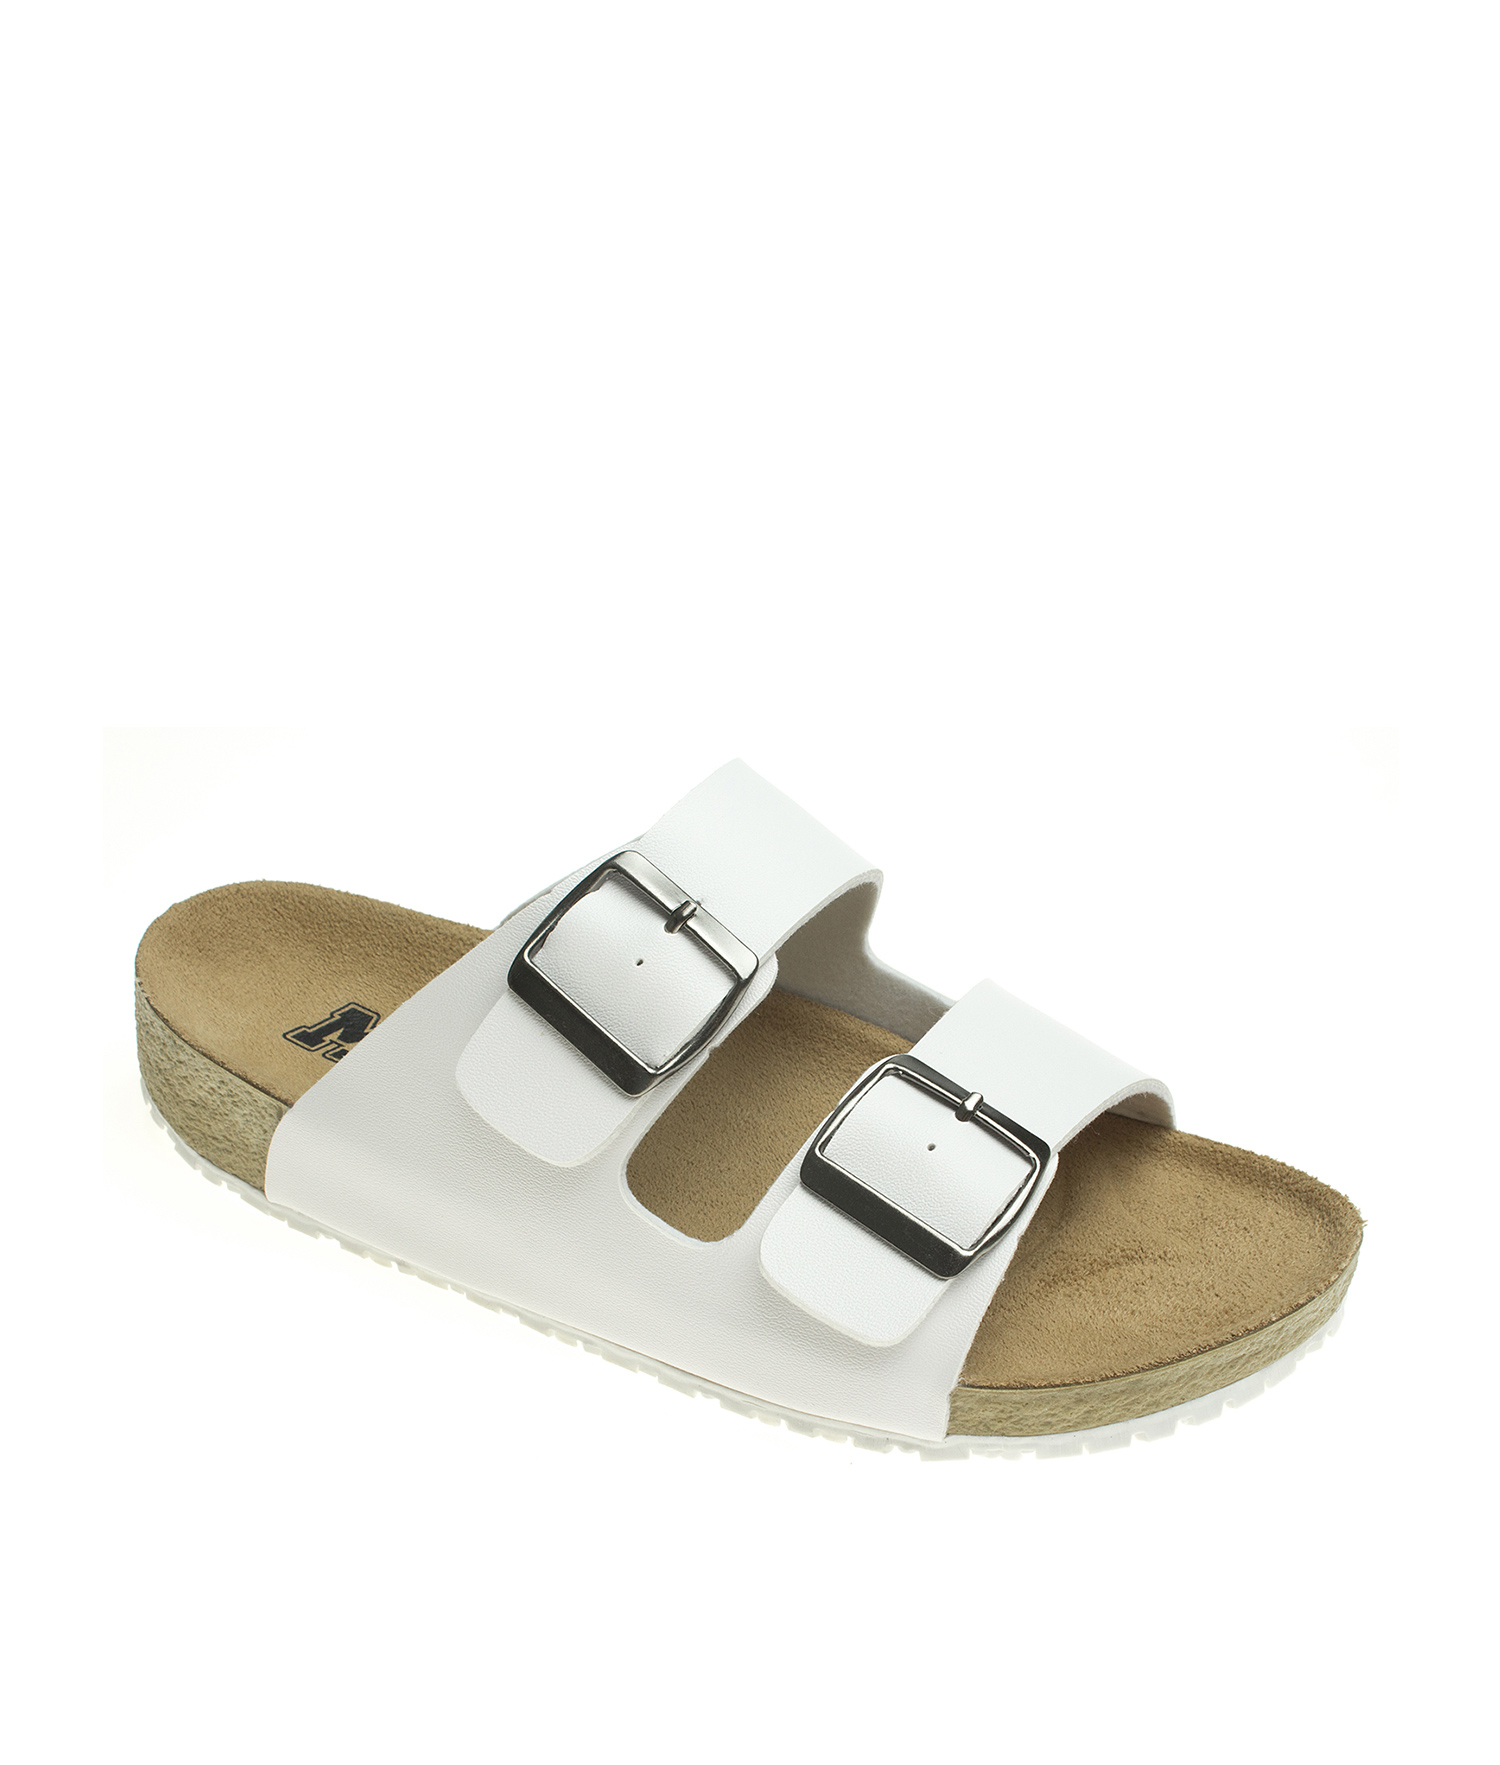 861b19a13 AnnaKastle Womens Double Strap Silde Flat Sandals White